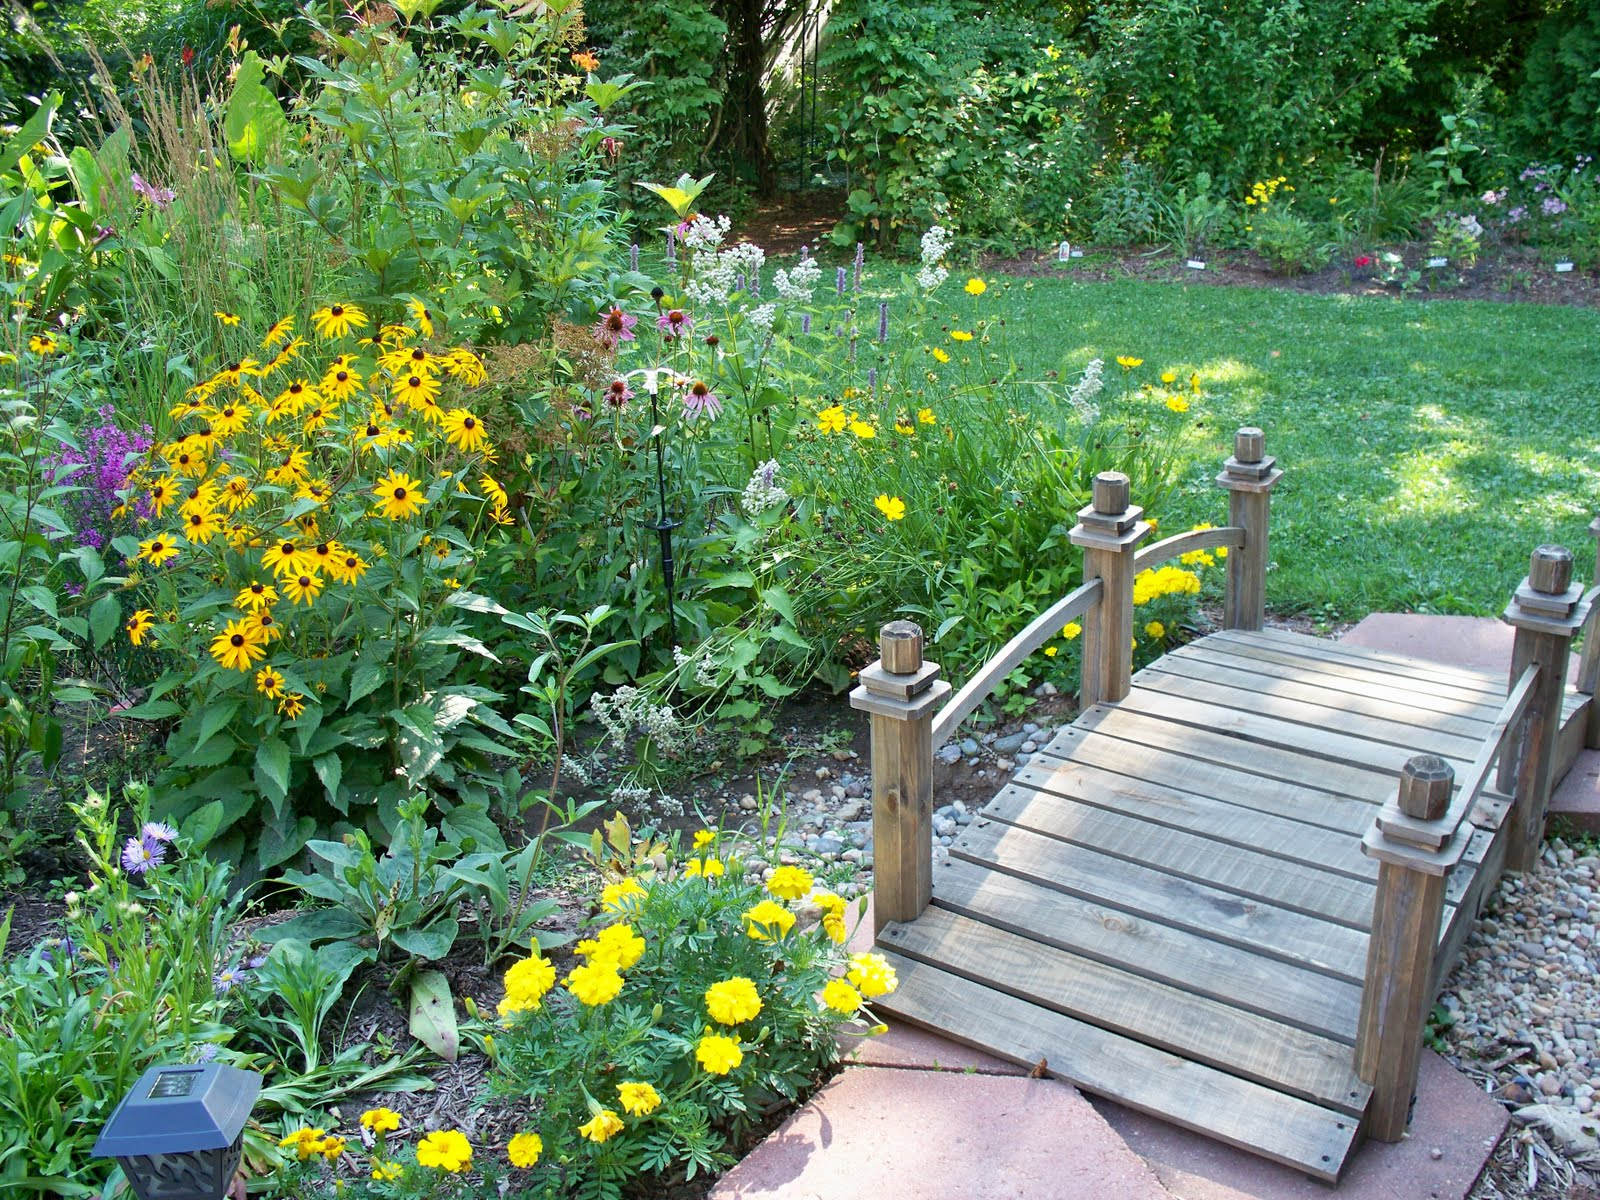 Garden Beauty: Beauty in a Rain Garden